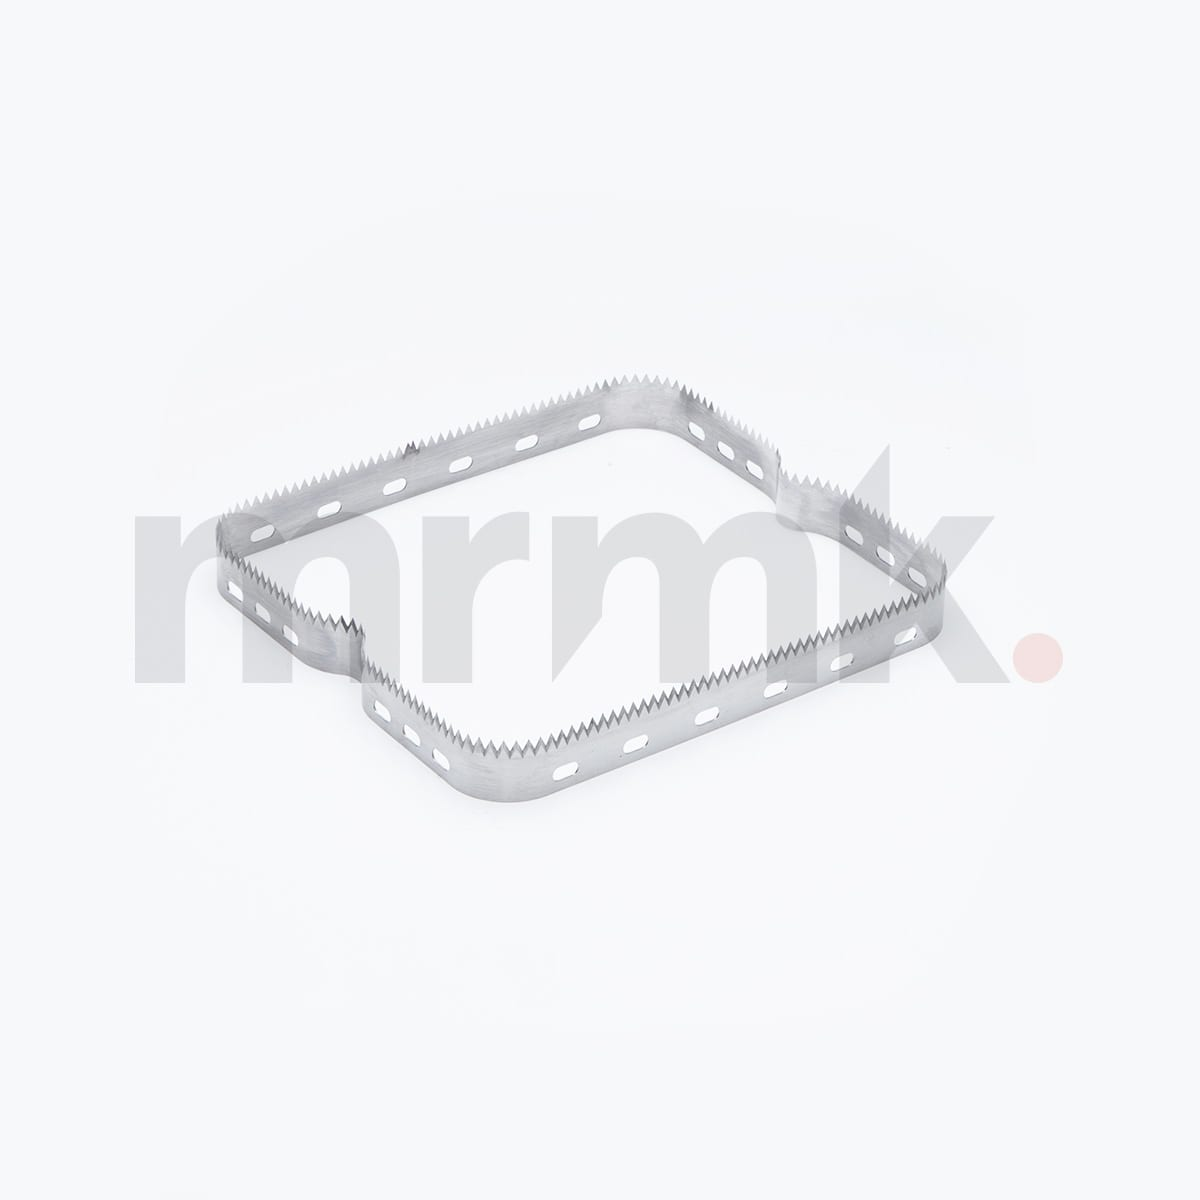 Mecapack Mecaplastic Compatible Tray Seal Knife